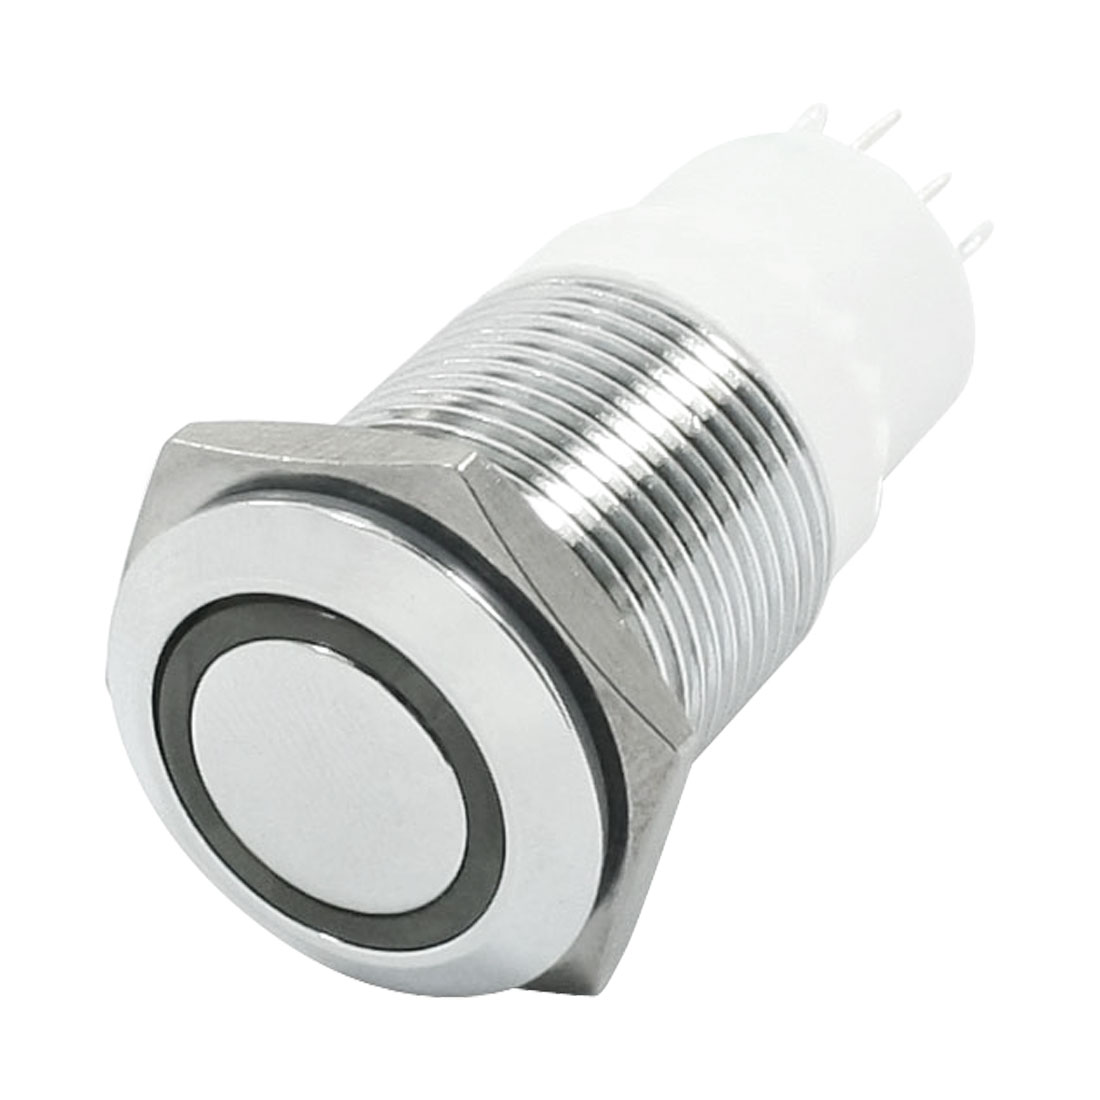 16mm 24V Red LED Angle Eye SPDT Stainless Steel Momentary Push Button Switch